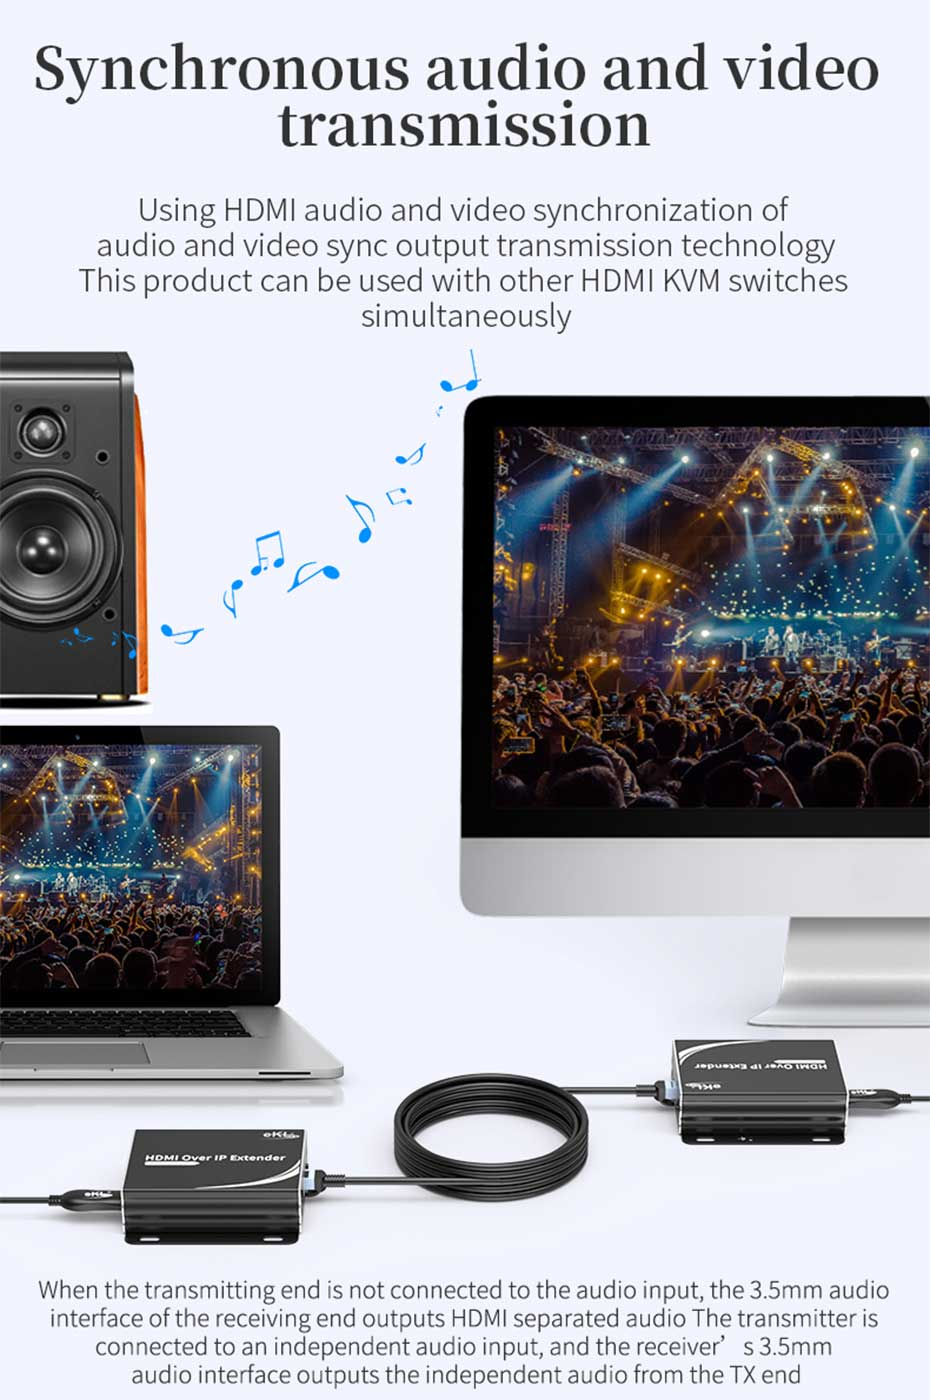 HDMI KVM extender 1-to-many/many-to-many HU150 supports simultaneous audio and video transmission